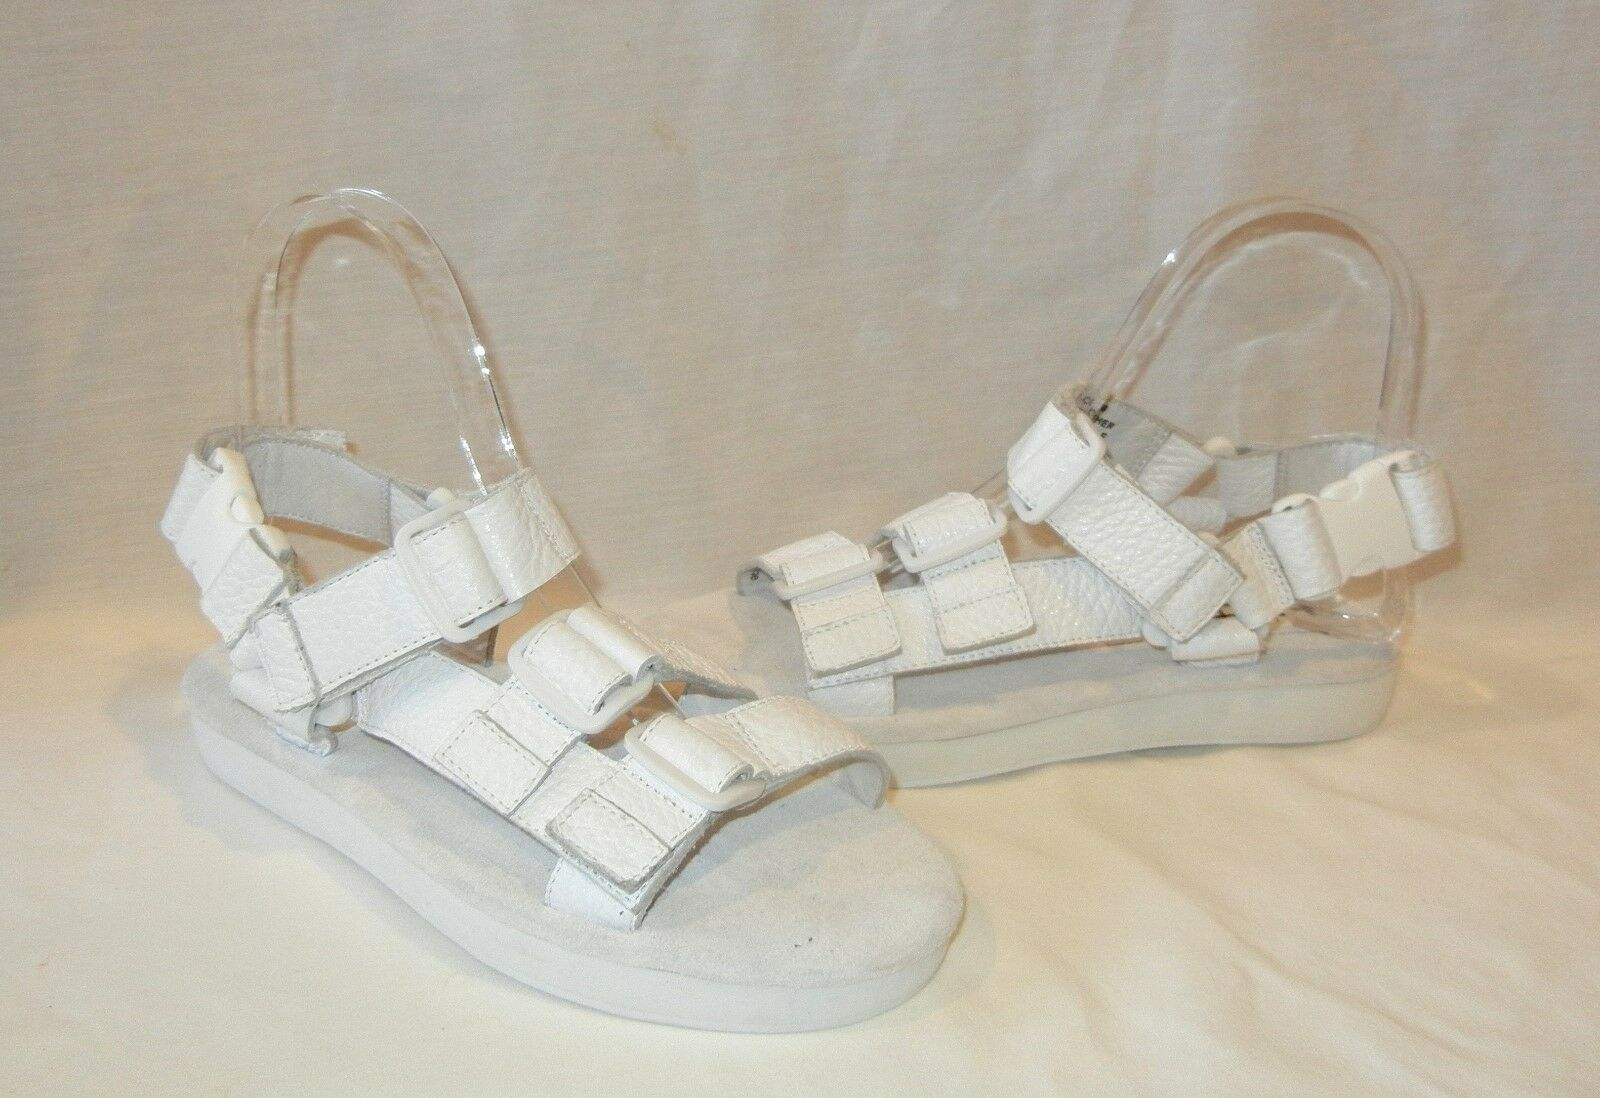 1-900 Donna  Dot Com bianca Pebbled Leather Sandals Sandals Sandals Retail  145 Dimensione 9 4cf149